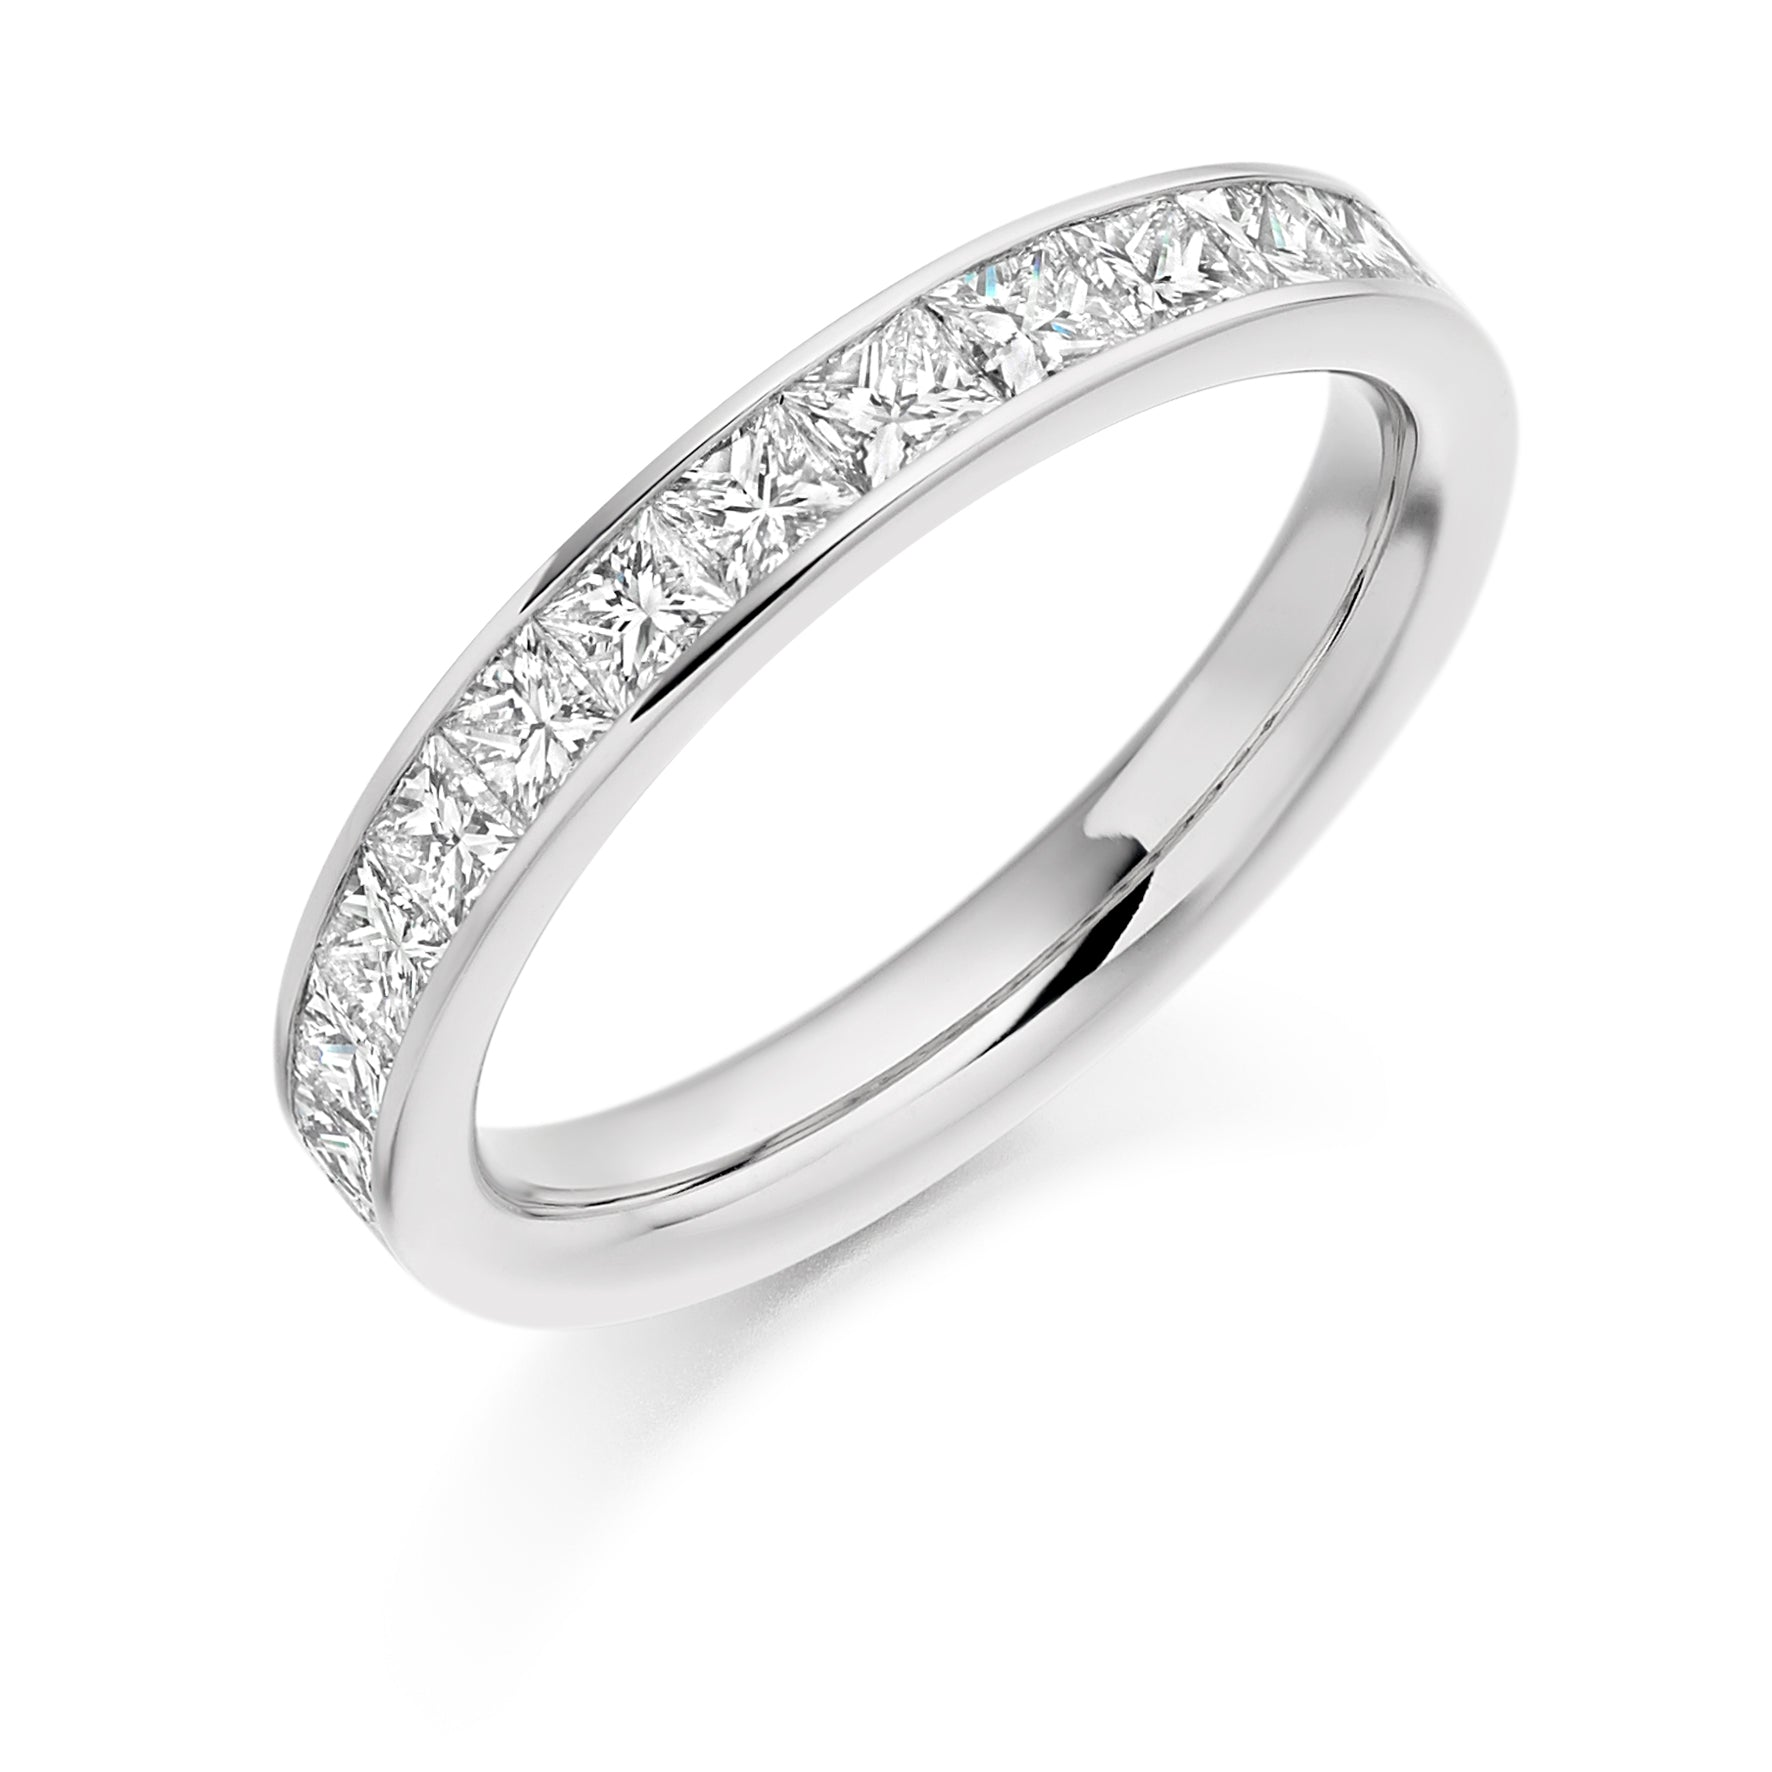 1ct Princess Cut Diamond Eternity Ring - (Home Try-On)